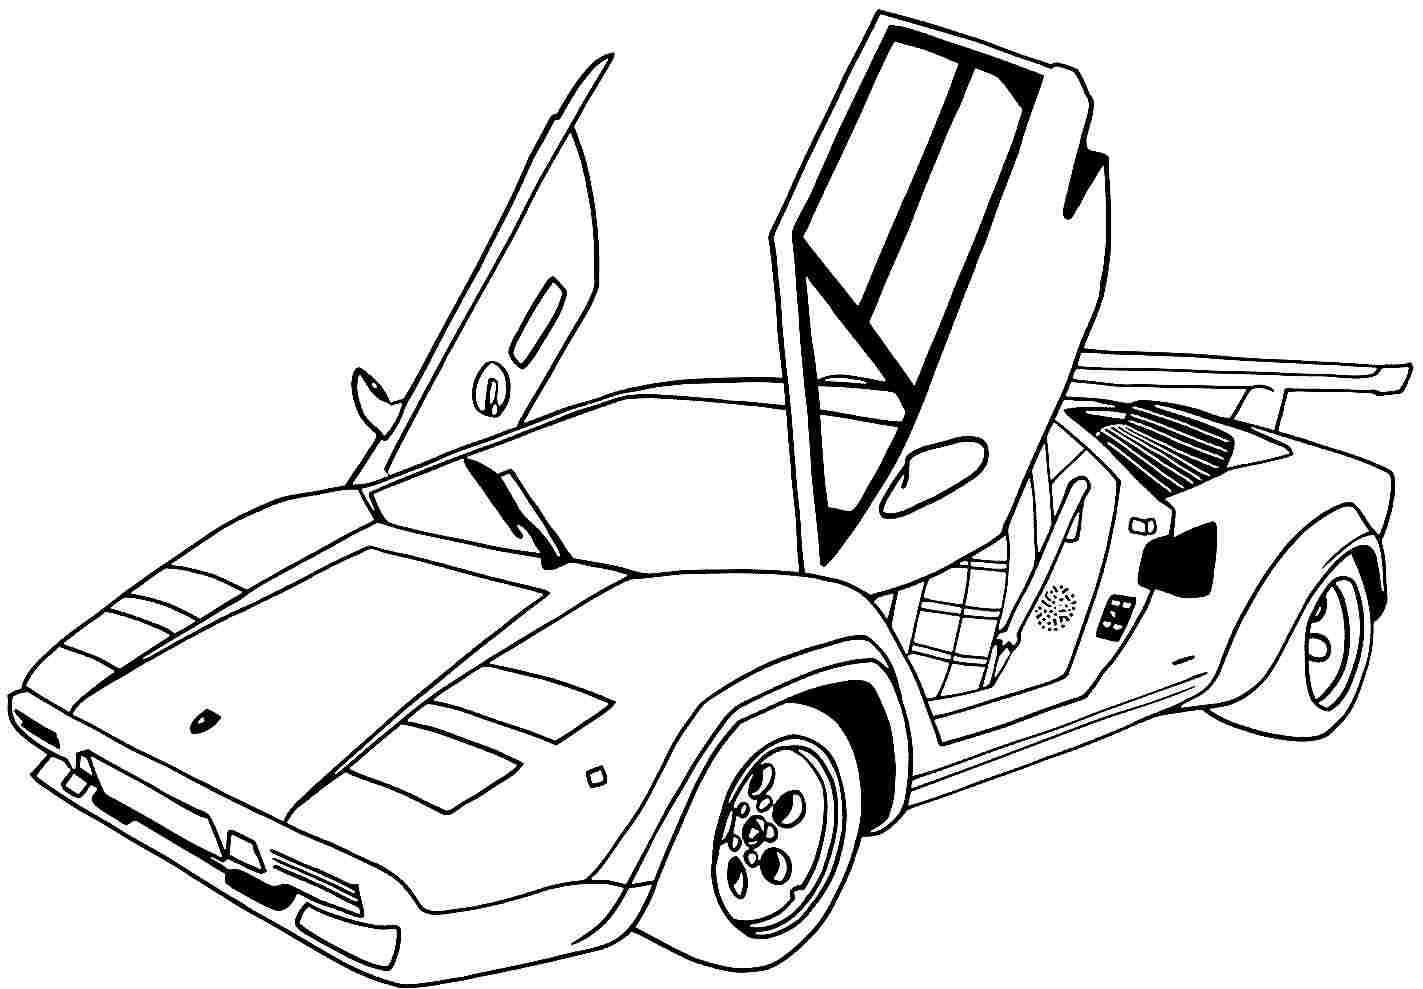 45 Top Coloring Pages Of Cars Pdf Download Free Images